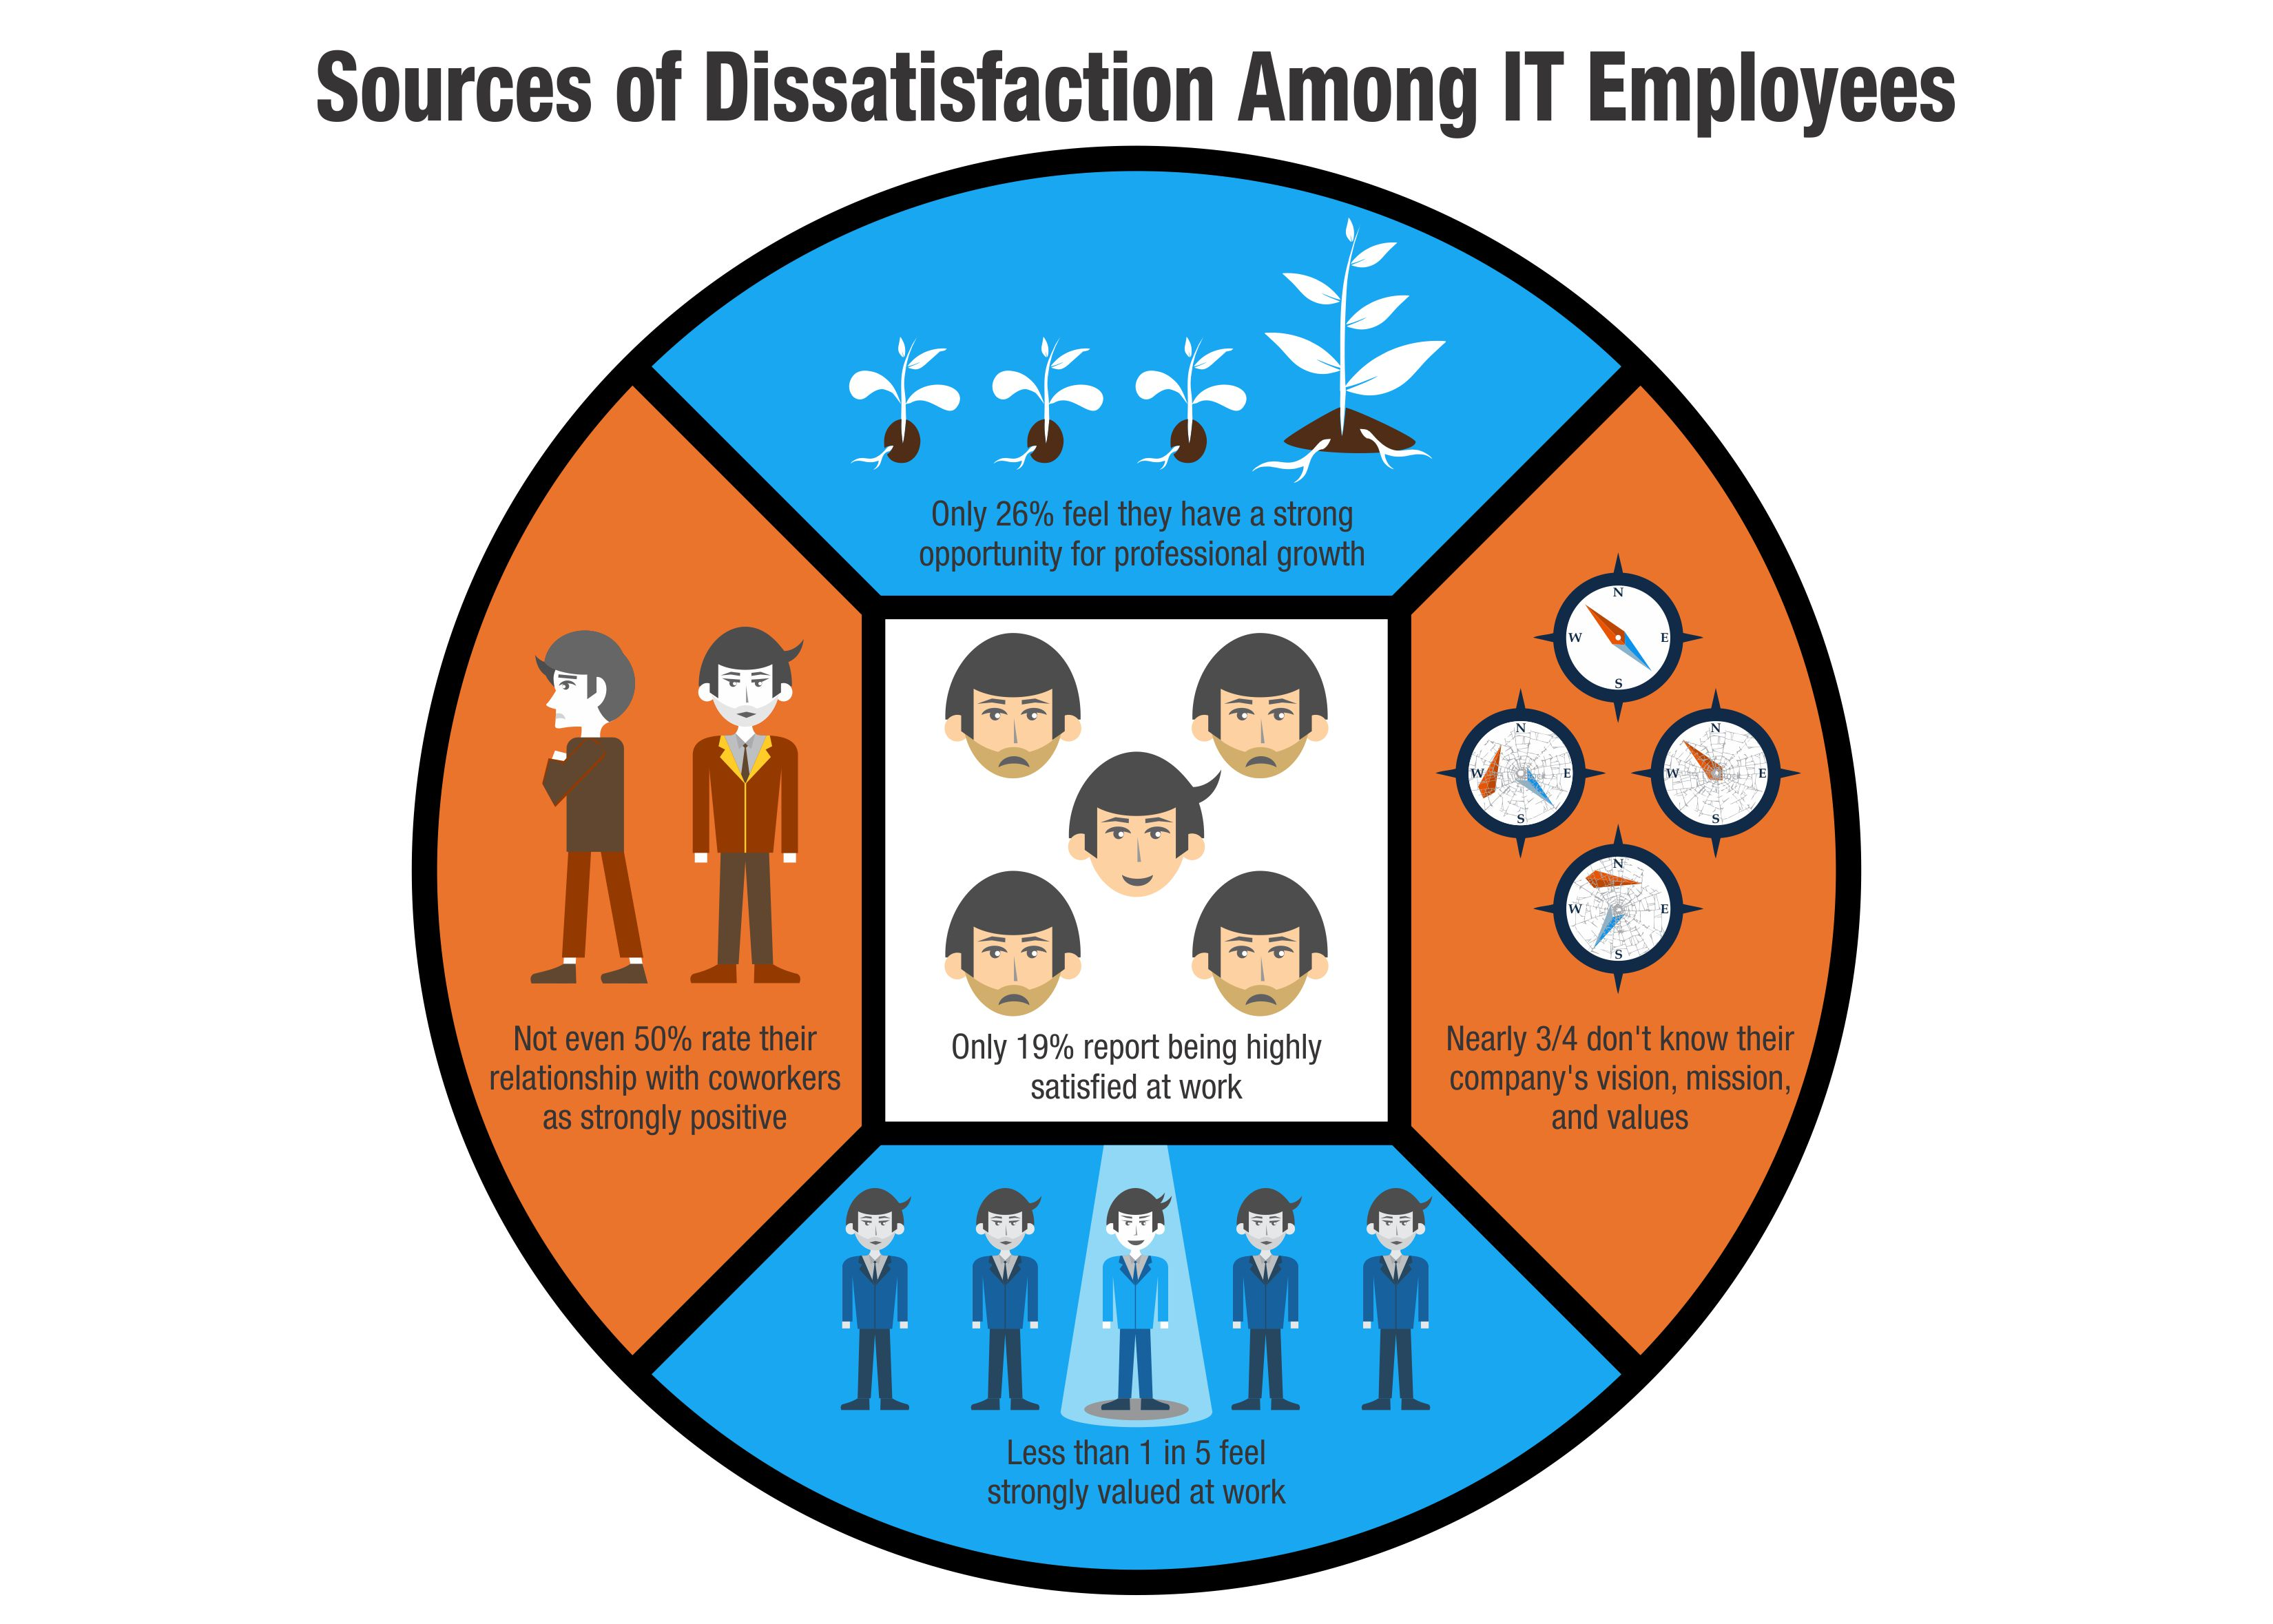 Sources of dissatisfaction among IT employees   TINYpulse